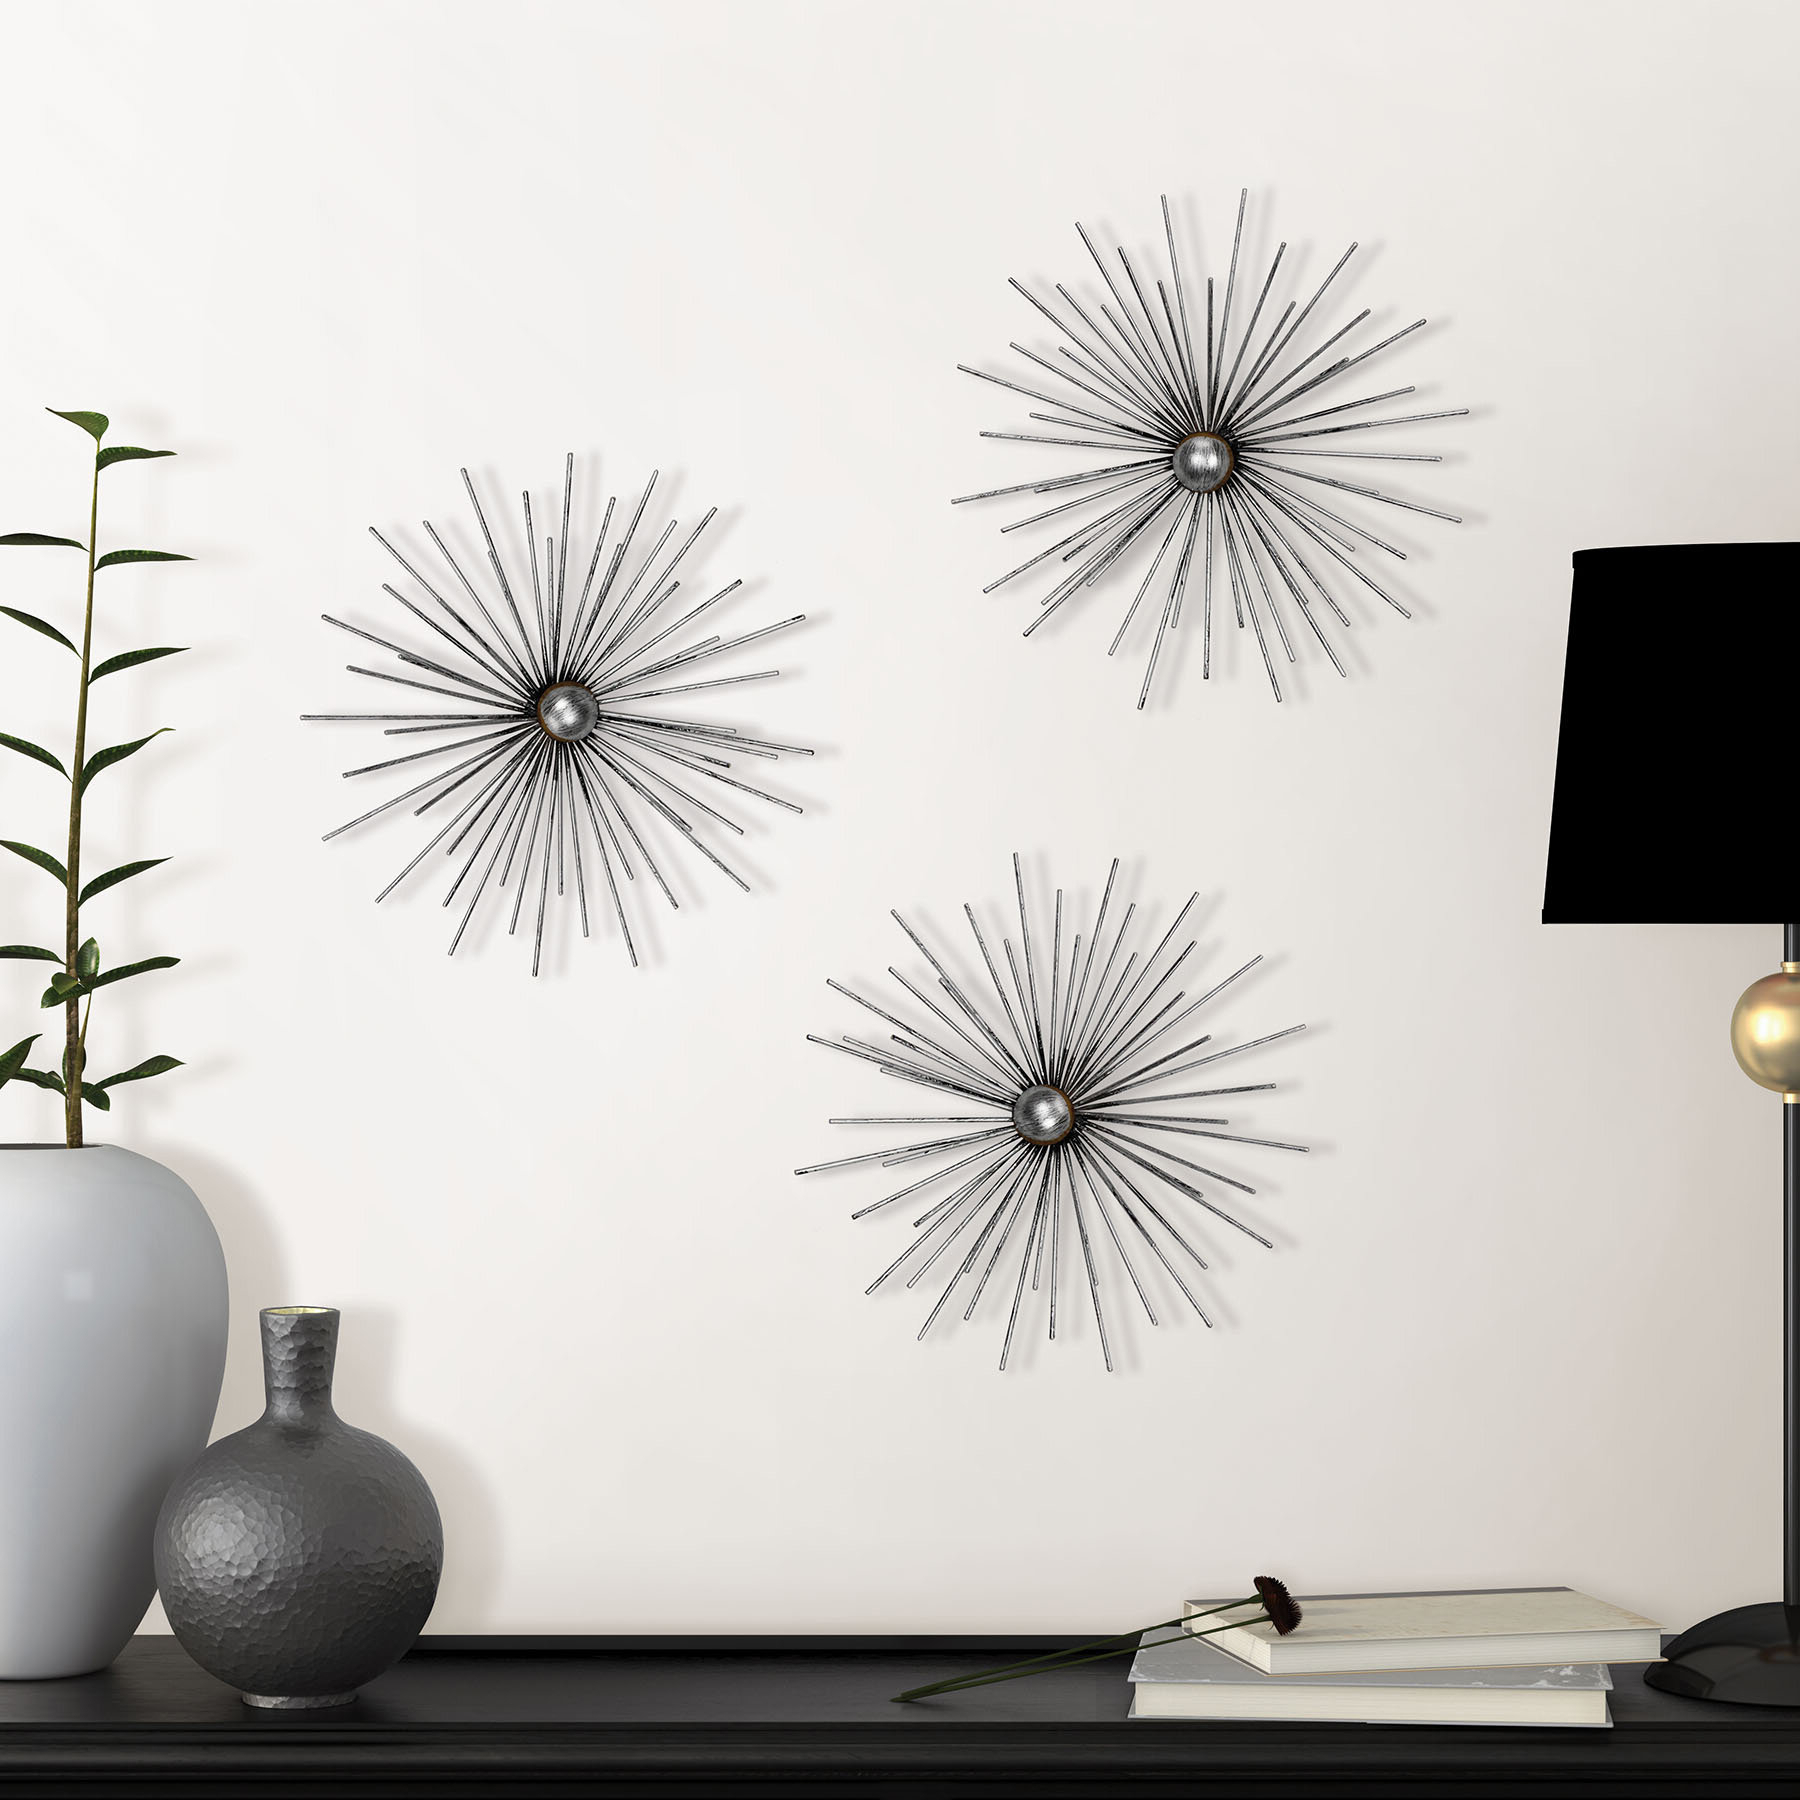 Wayfair With Regard To Most Recent 2 Piece Starburst Wall Decor Sets (View 17 of 20)